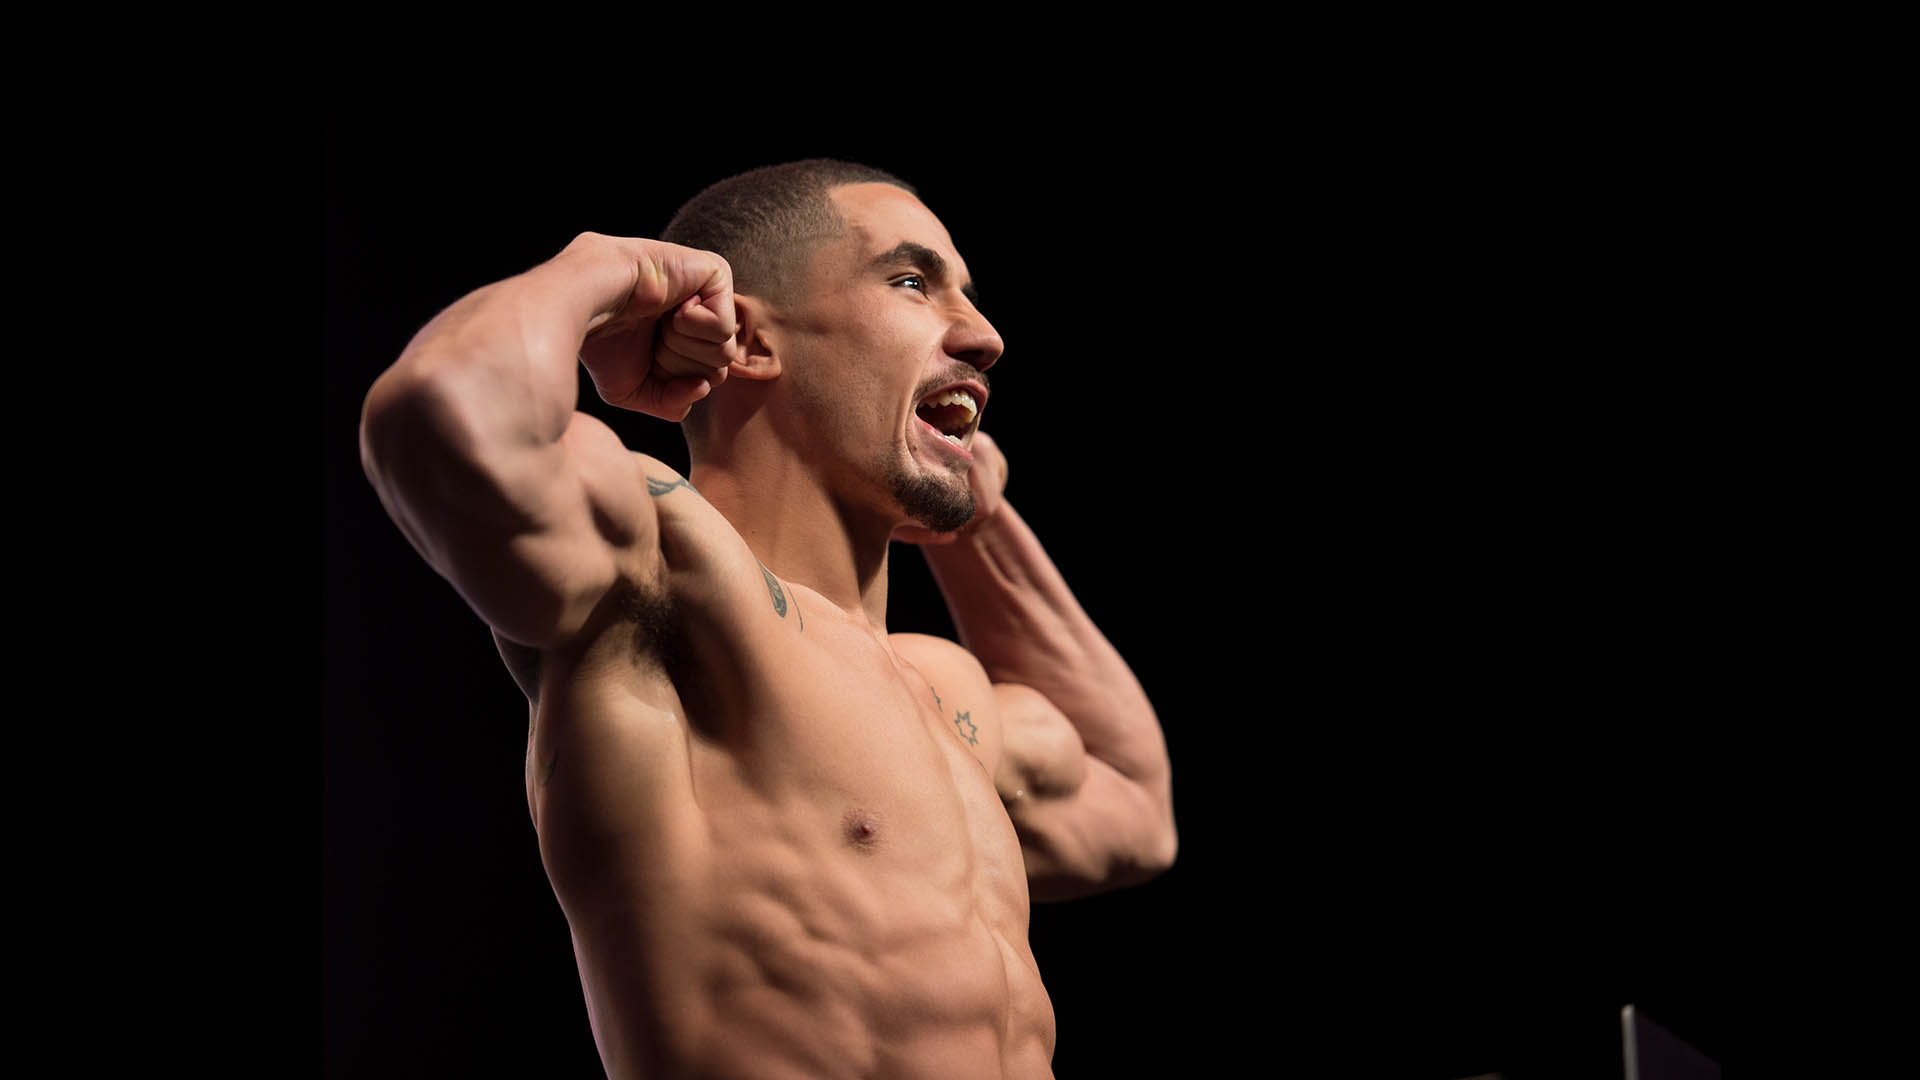 Robert Whittaker steps onto the scale during the UFC 197: Weigh-ins at MGM Grand Hotel & Casino on April 22, 2016 in Las Vegas Nevada. (Photo by Brandon Magnus/Zuffa LLC/Zuffa LLC via Getty Images)